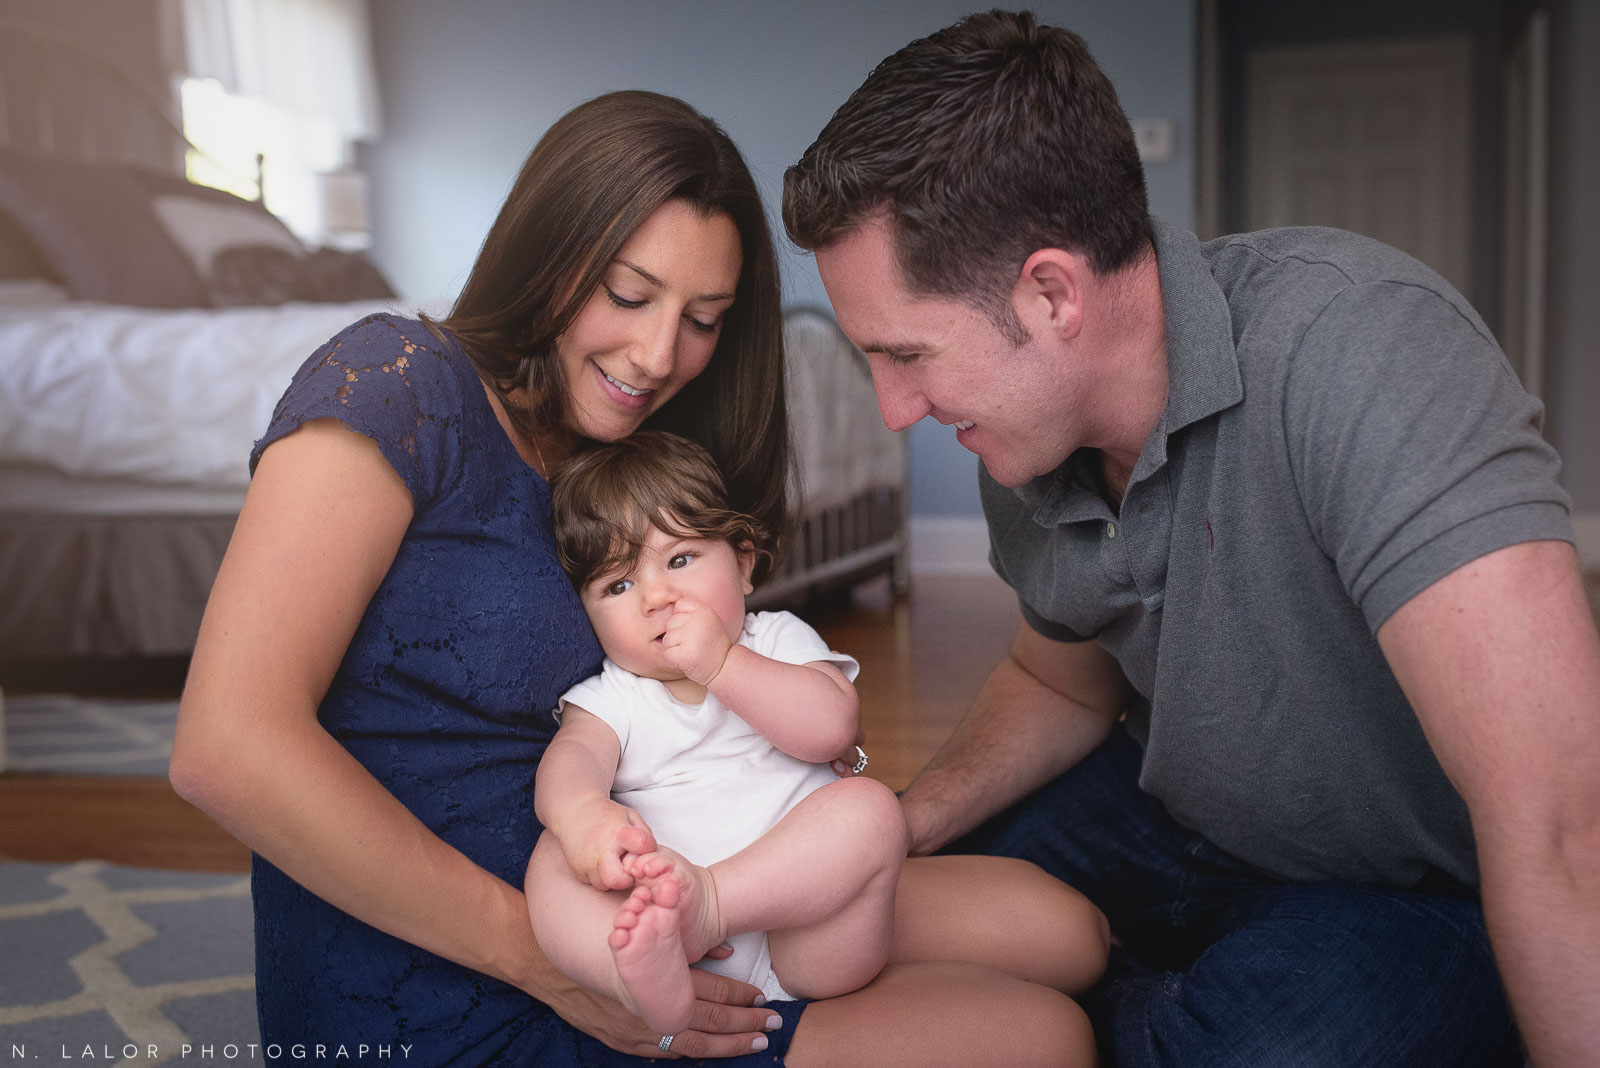 nlalor-photography-061715-styled-family-life-baby-photo-session-fairfield-ct-13.jpg